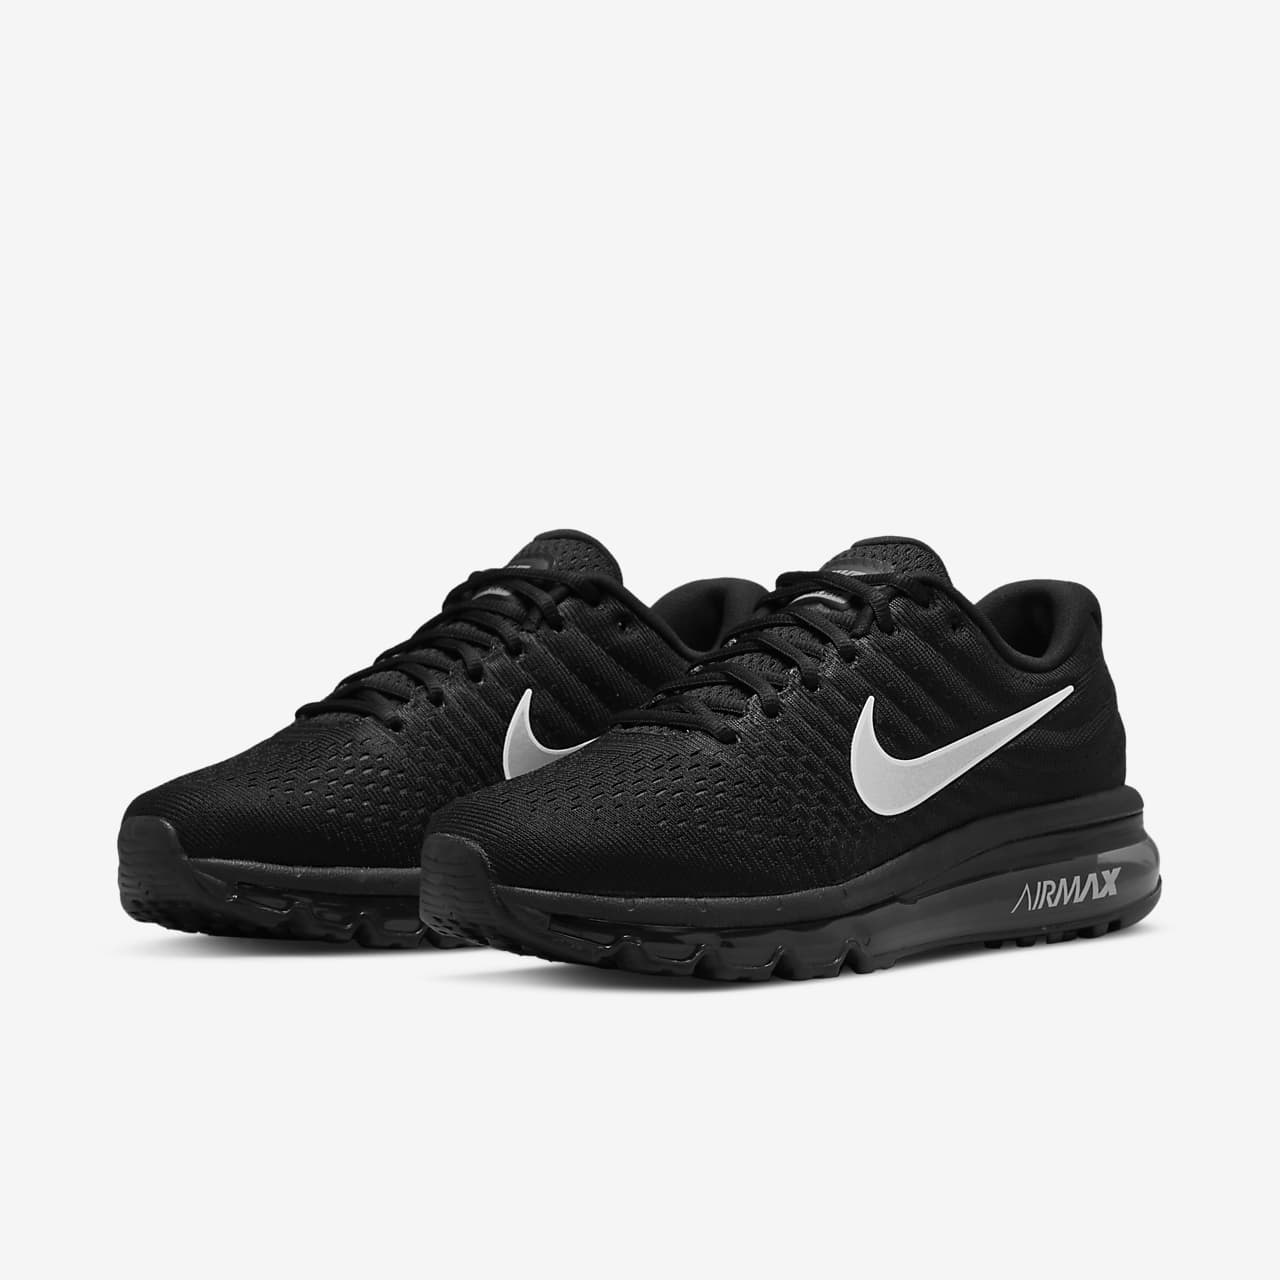 separation shoes fae26 15399 ... Nike Air Max 2017 Women s Shoe